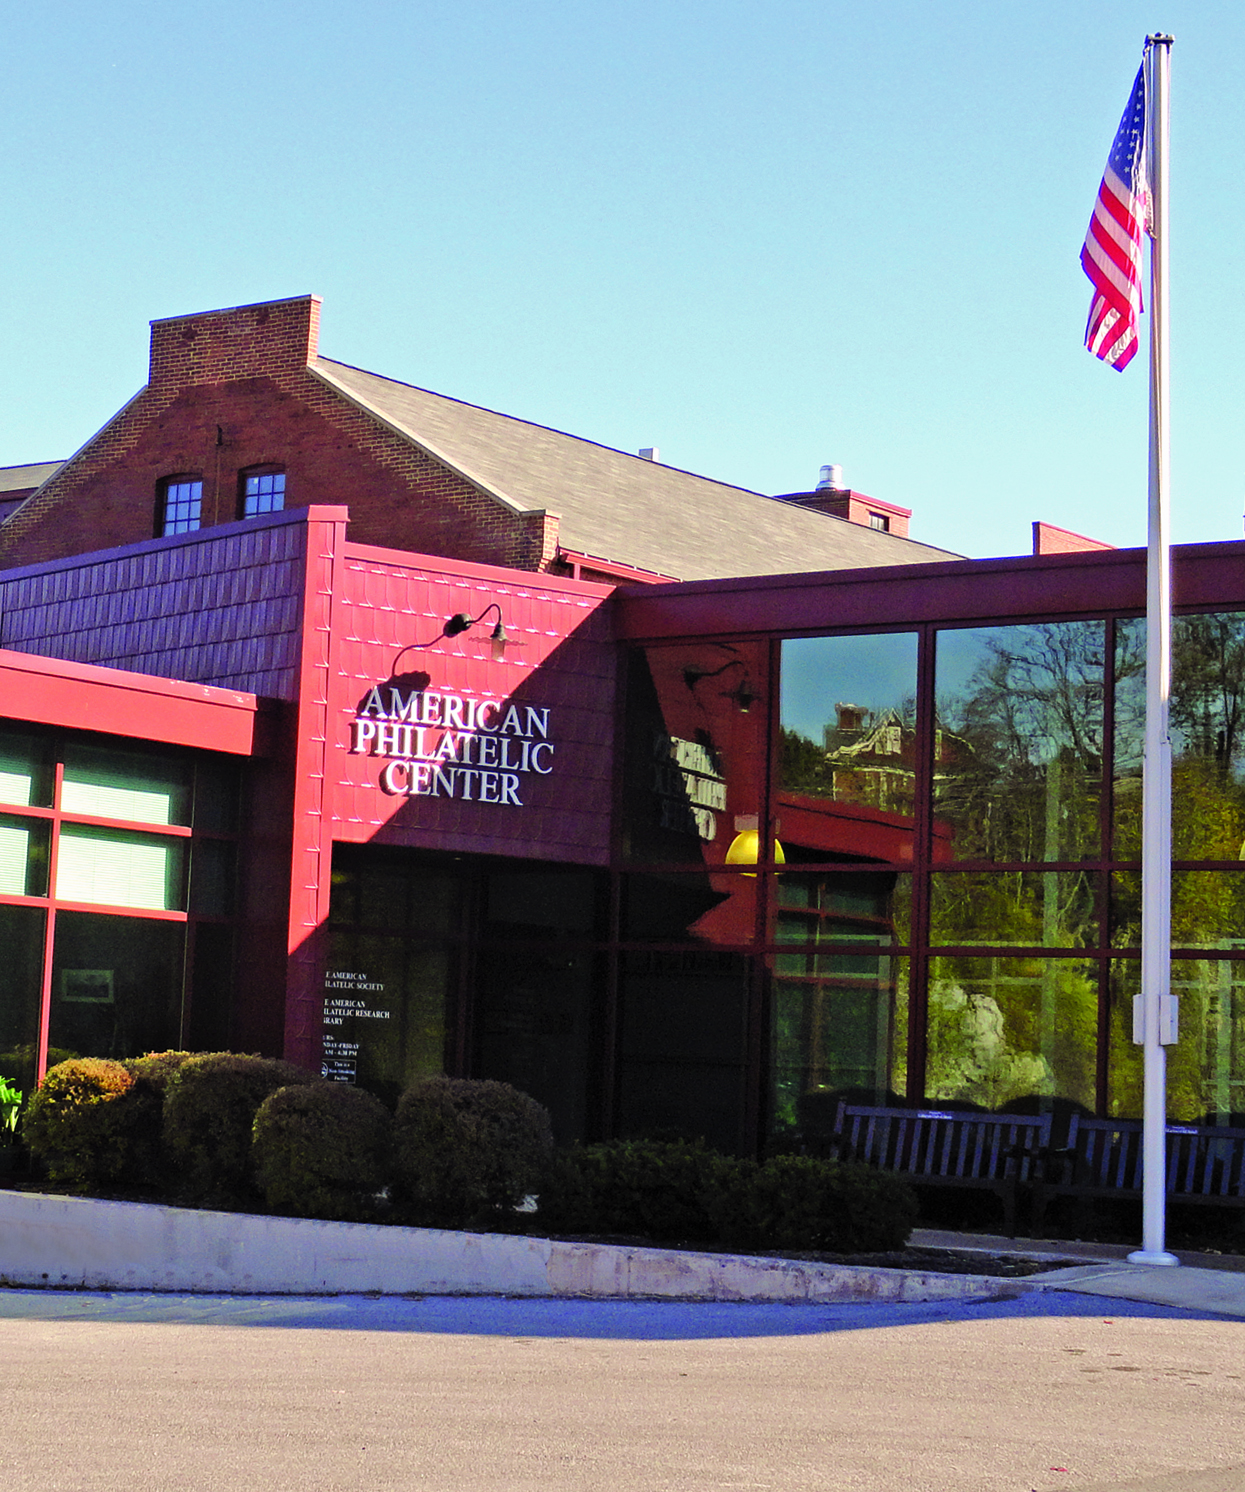 American Philatelic Center Entrance cropped